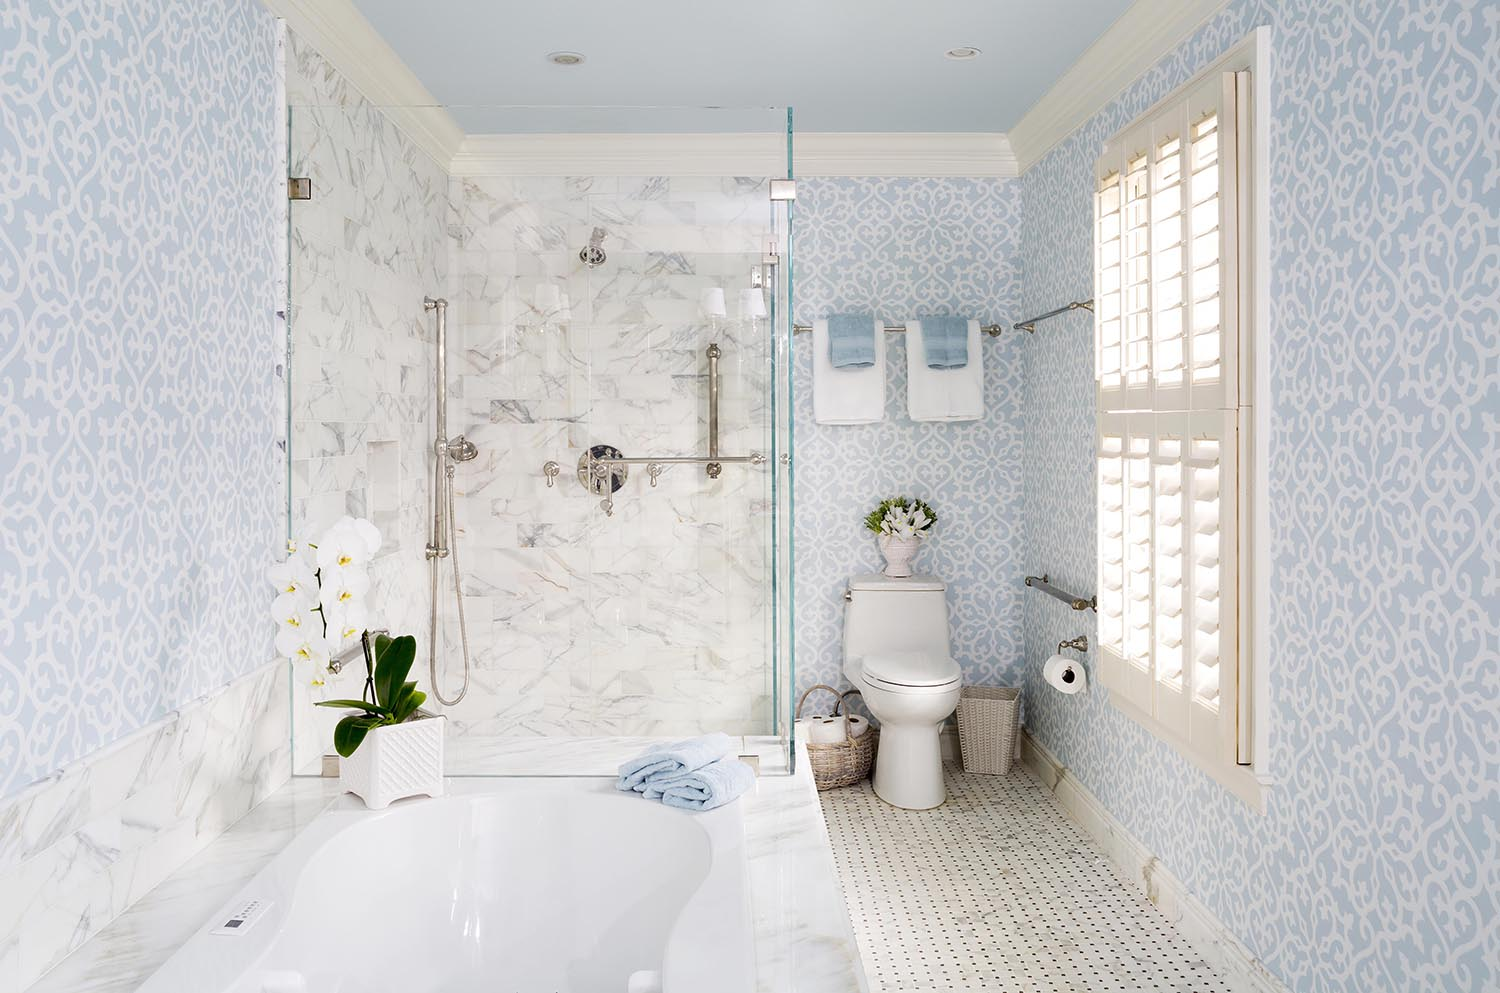 Bathroom Designs Services Bethesda, MD